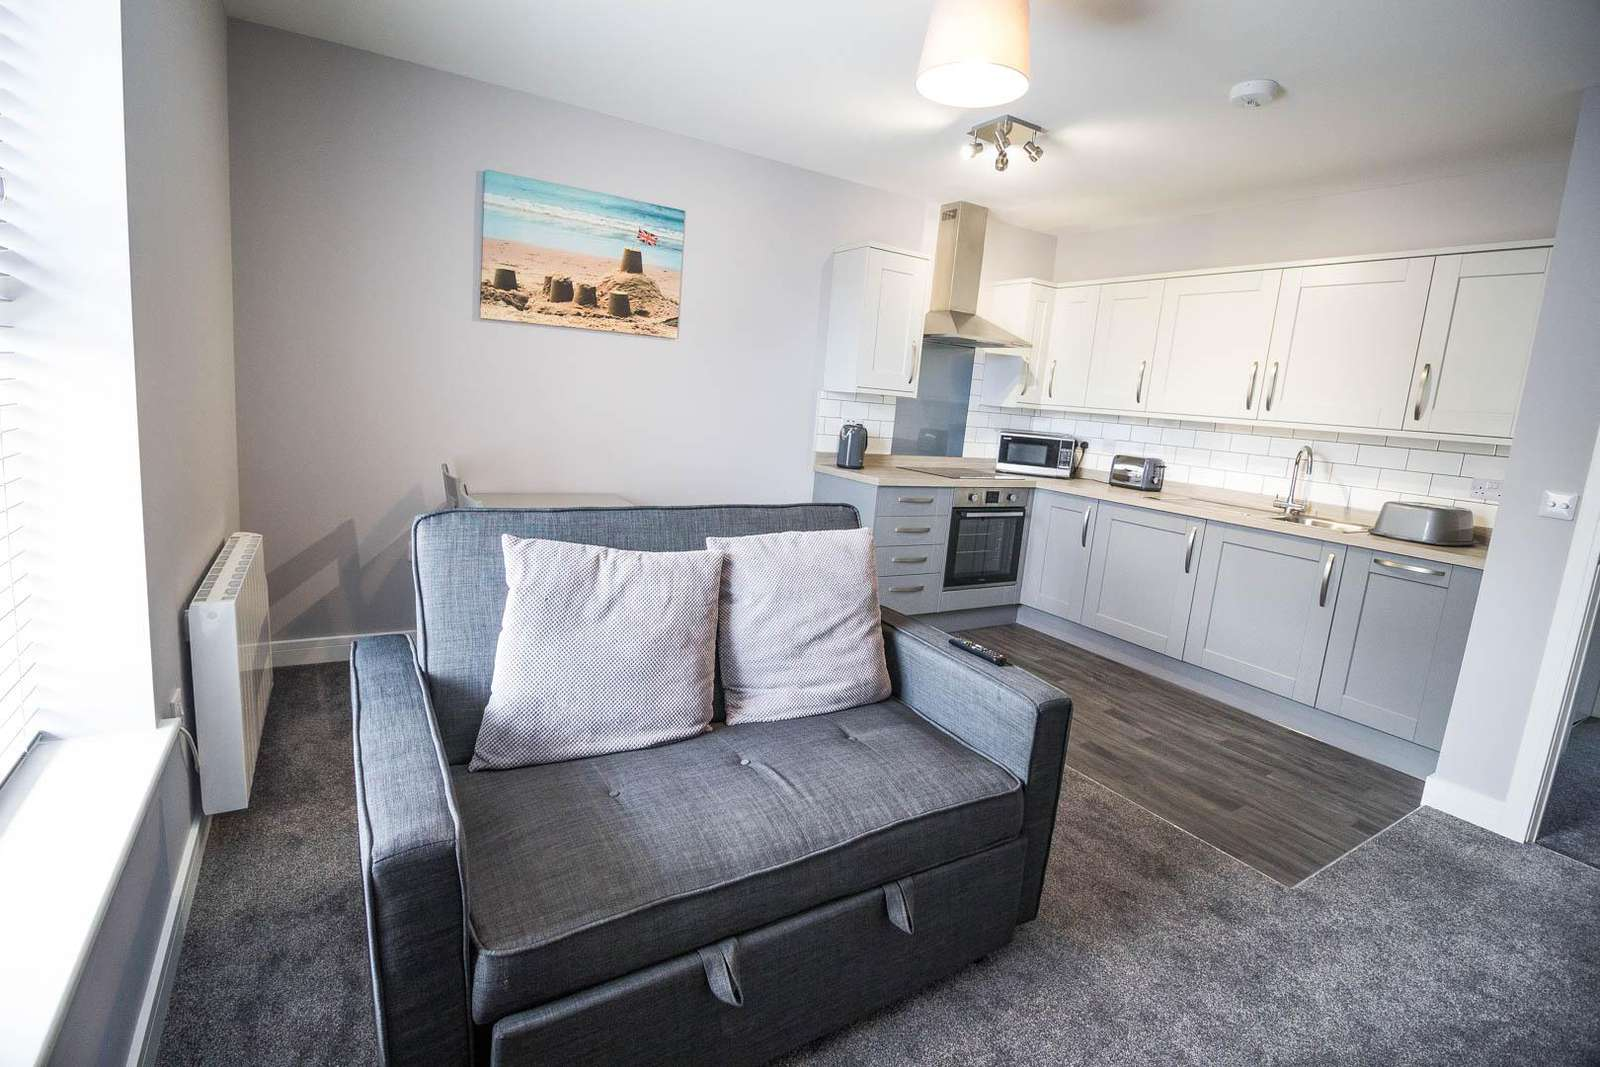 99005S – Sandcastles 5, 1 bed 4 berth apartment with WiFi in Great Yarmouth. Diamond-Plus rated. - property